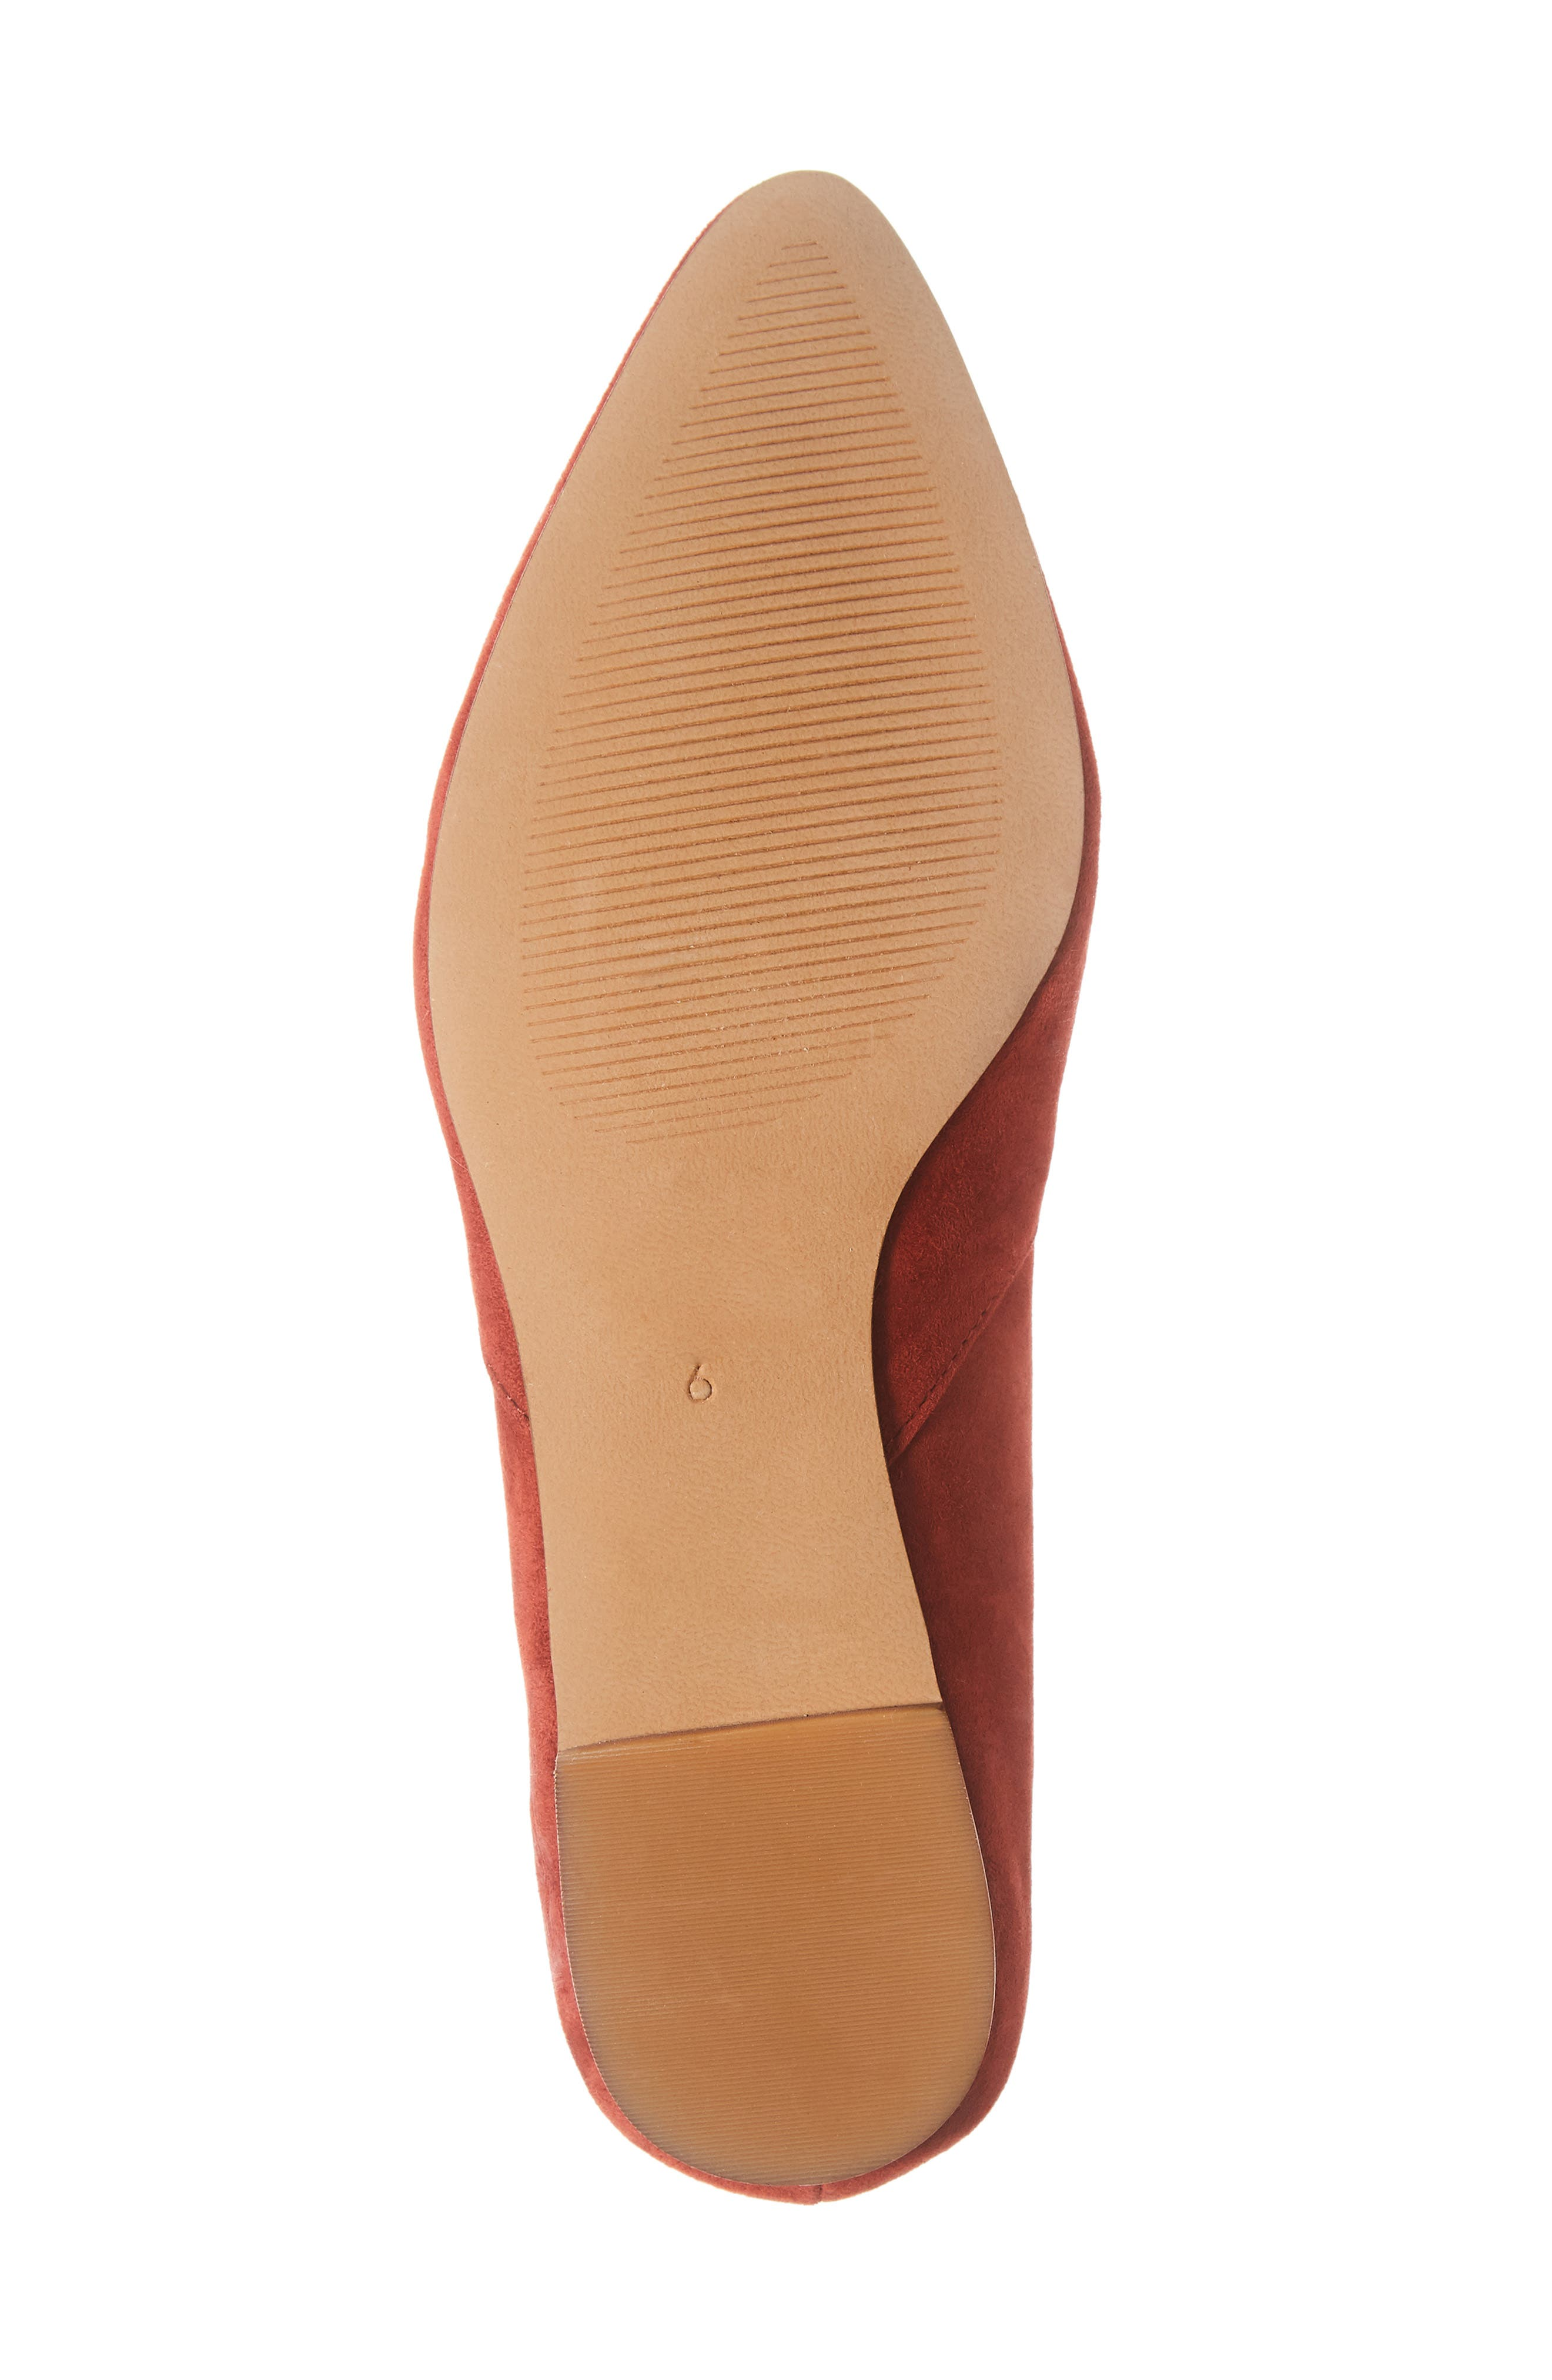 Lizbeth Pointy Toe Flat,                             Alternate thumbnail 6, color,                             DARK CINNABAR